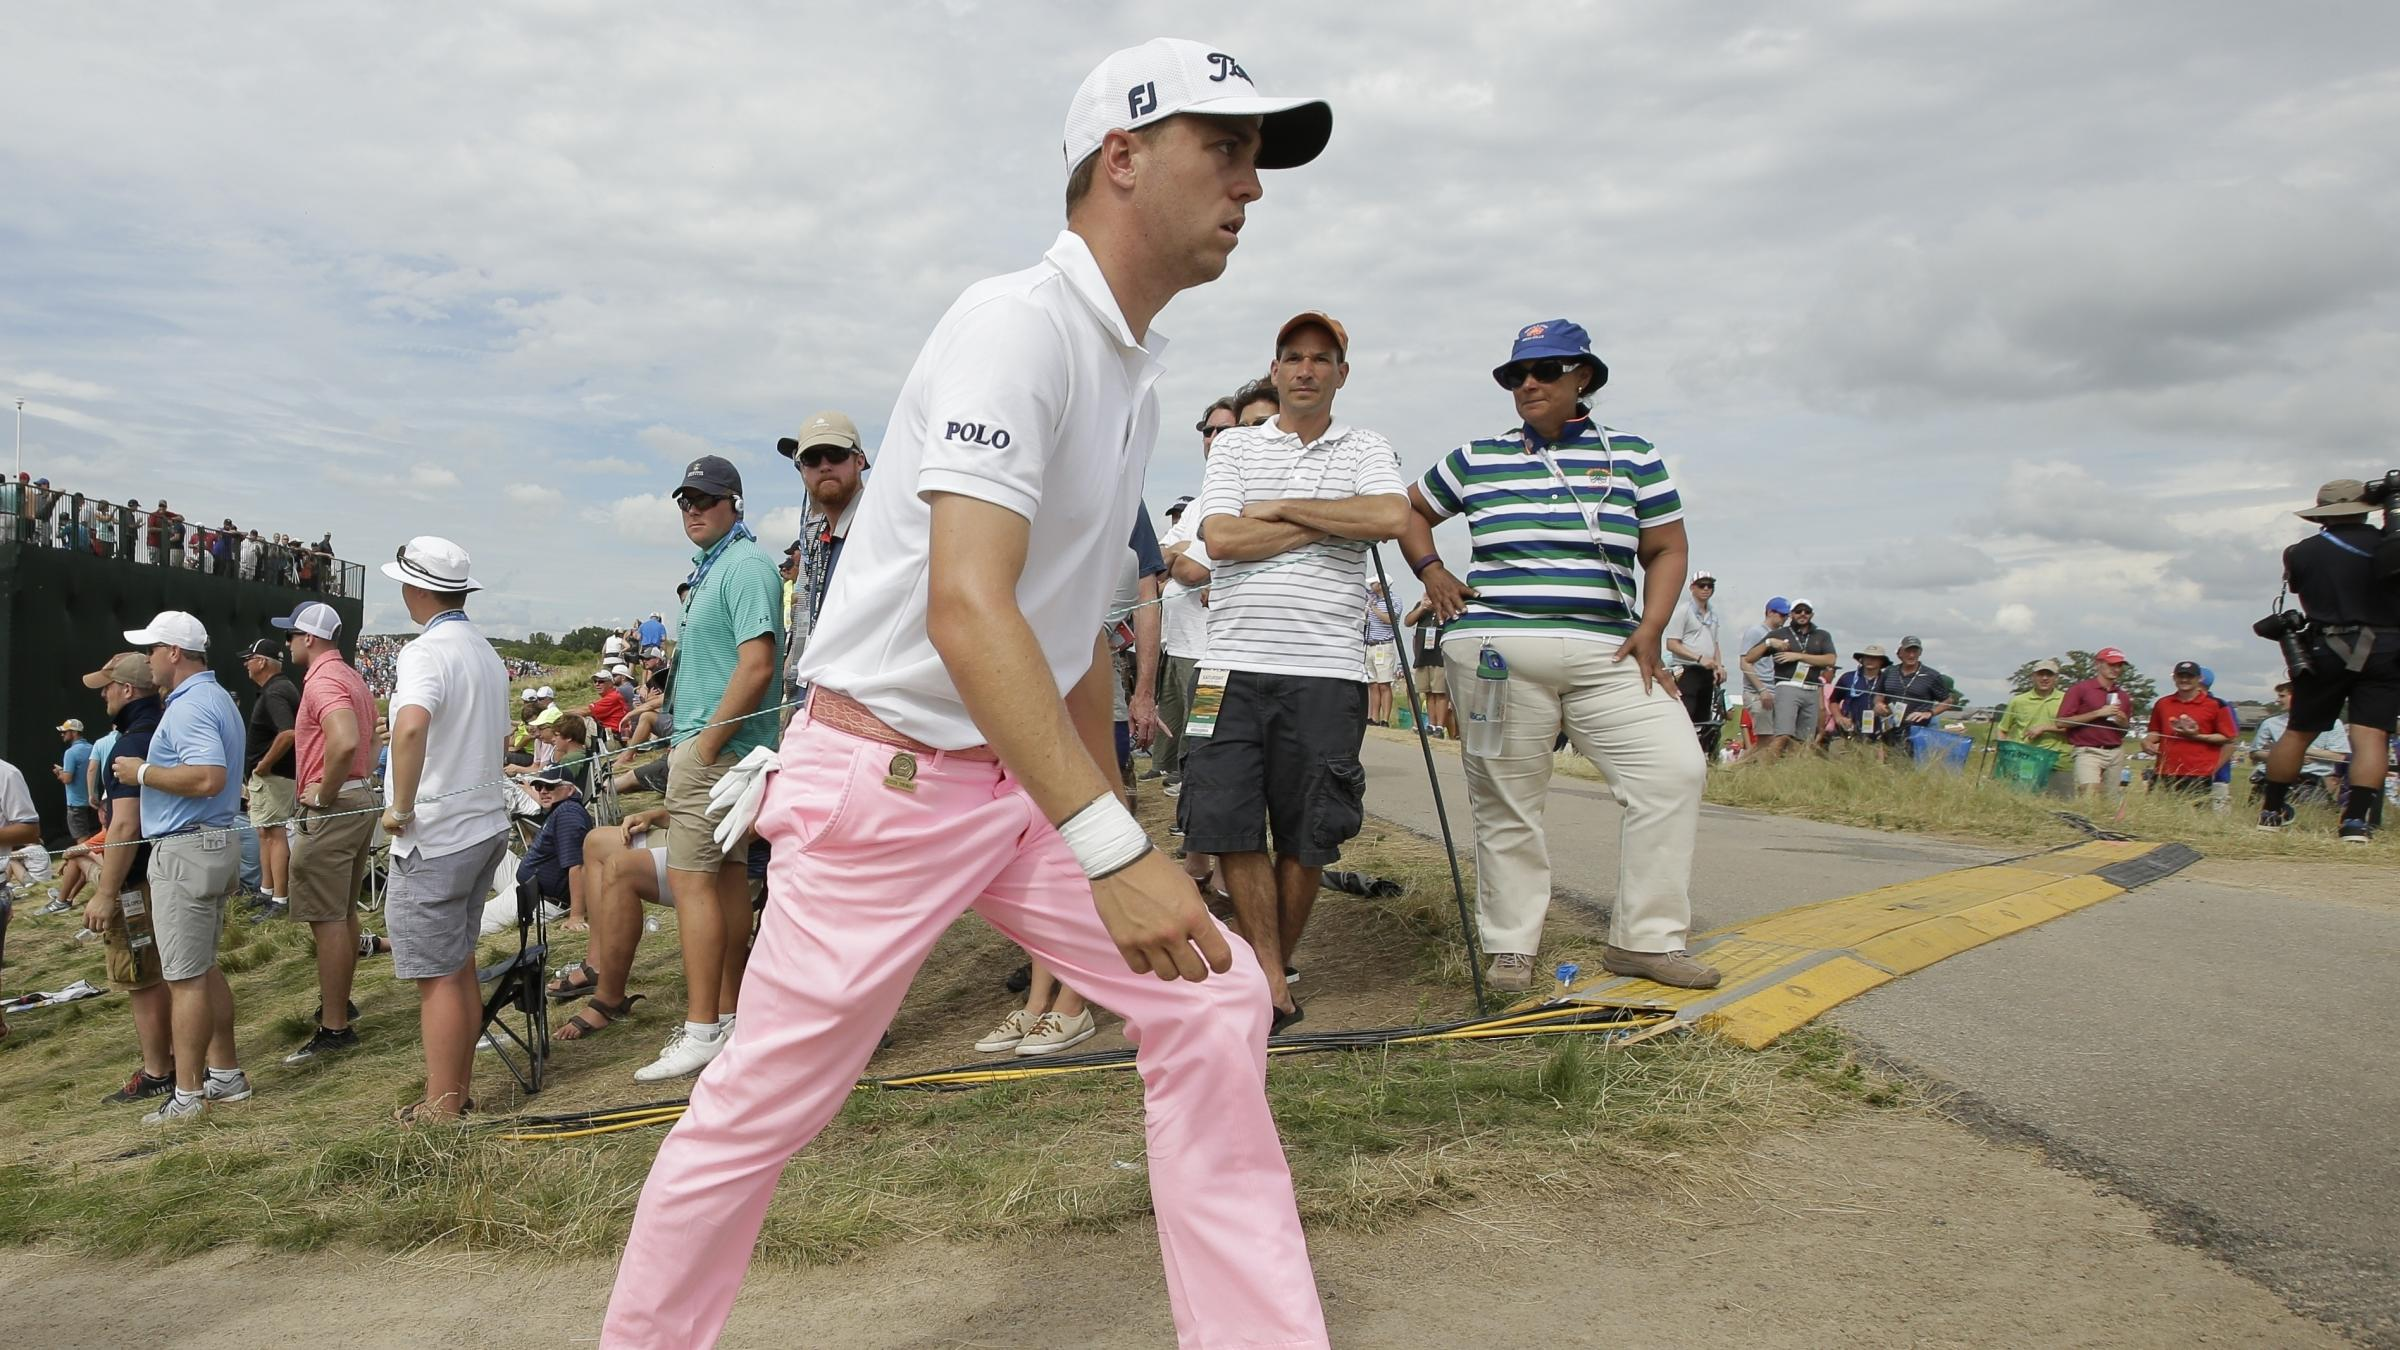 Jordan Spieth finishes US Open on a high note